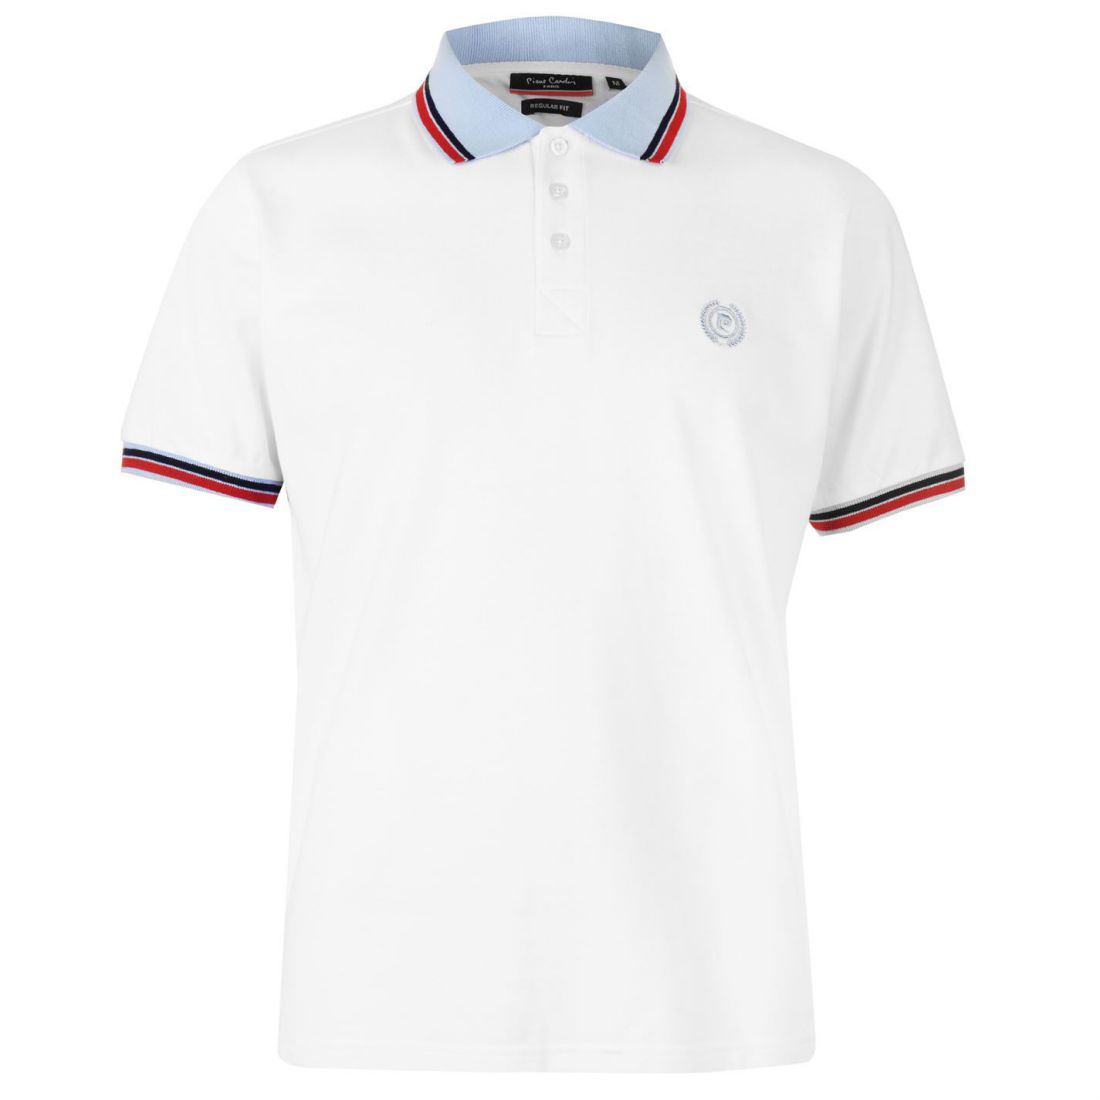 Pierre Cardin Mens Contrast Tipped Polo Shirt Classic Fit Tee Top